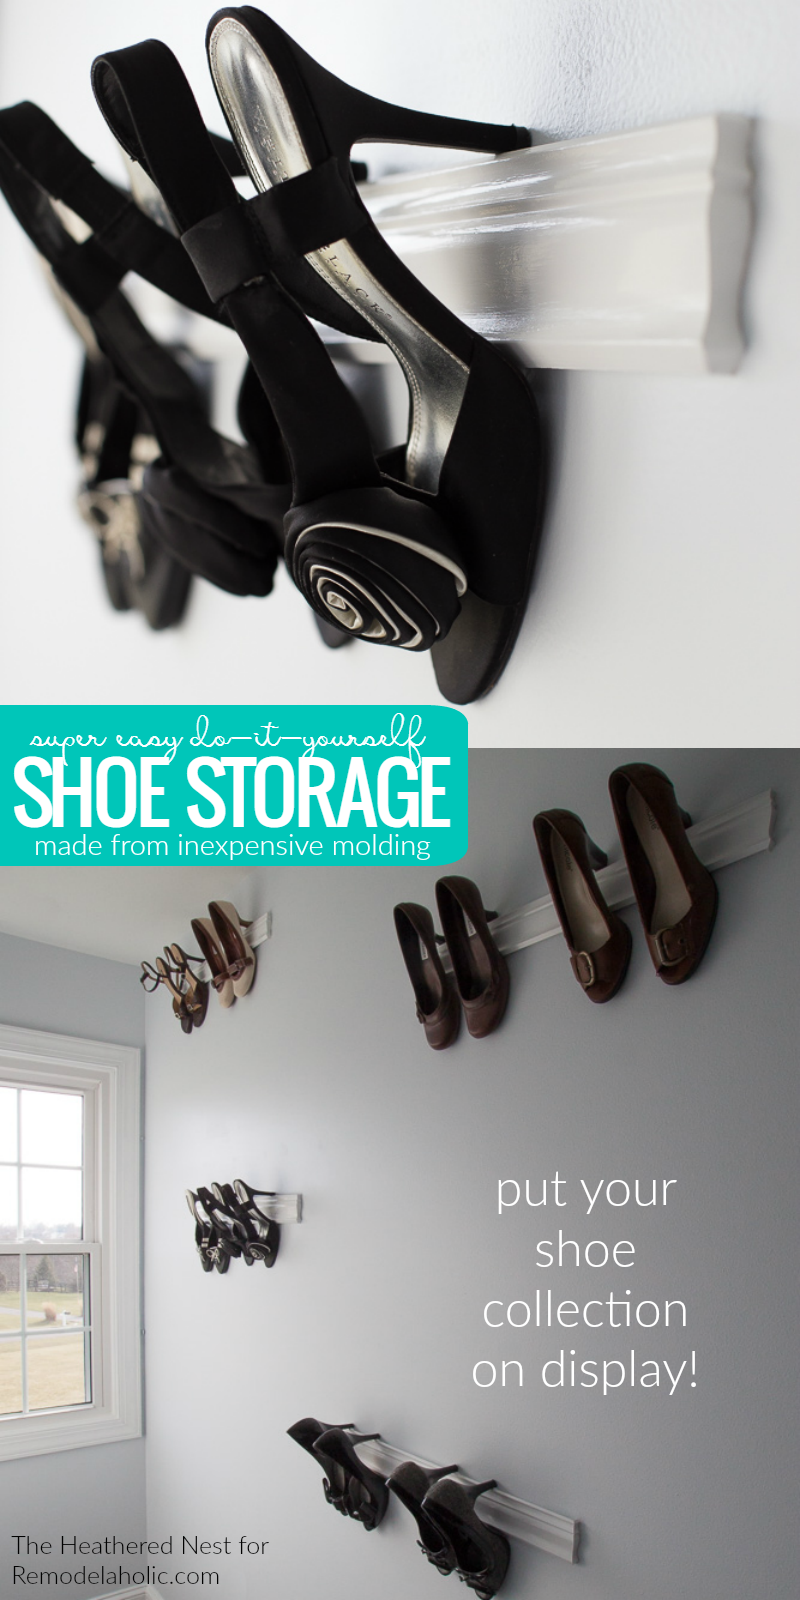 remodelaholic easy diy molding shoe storage for high heeled shoes